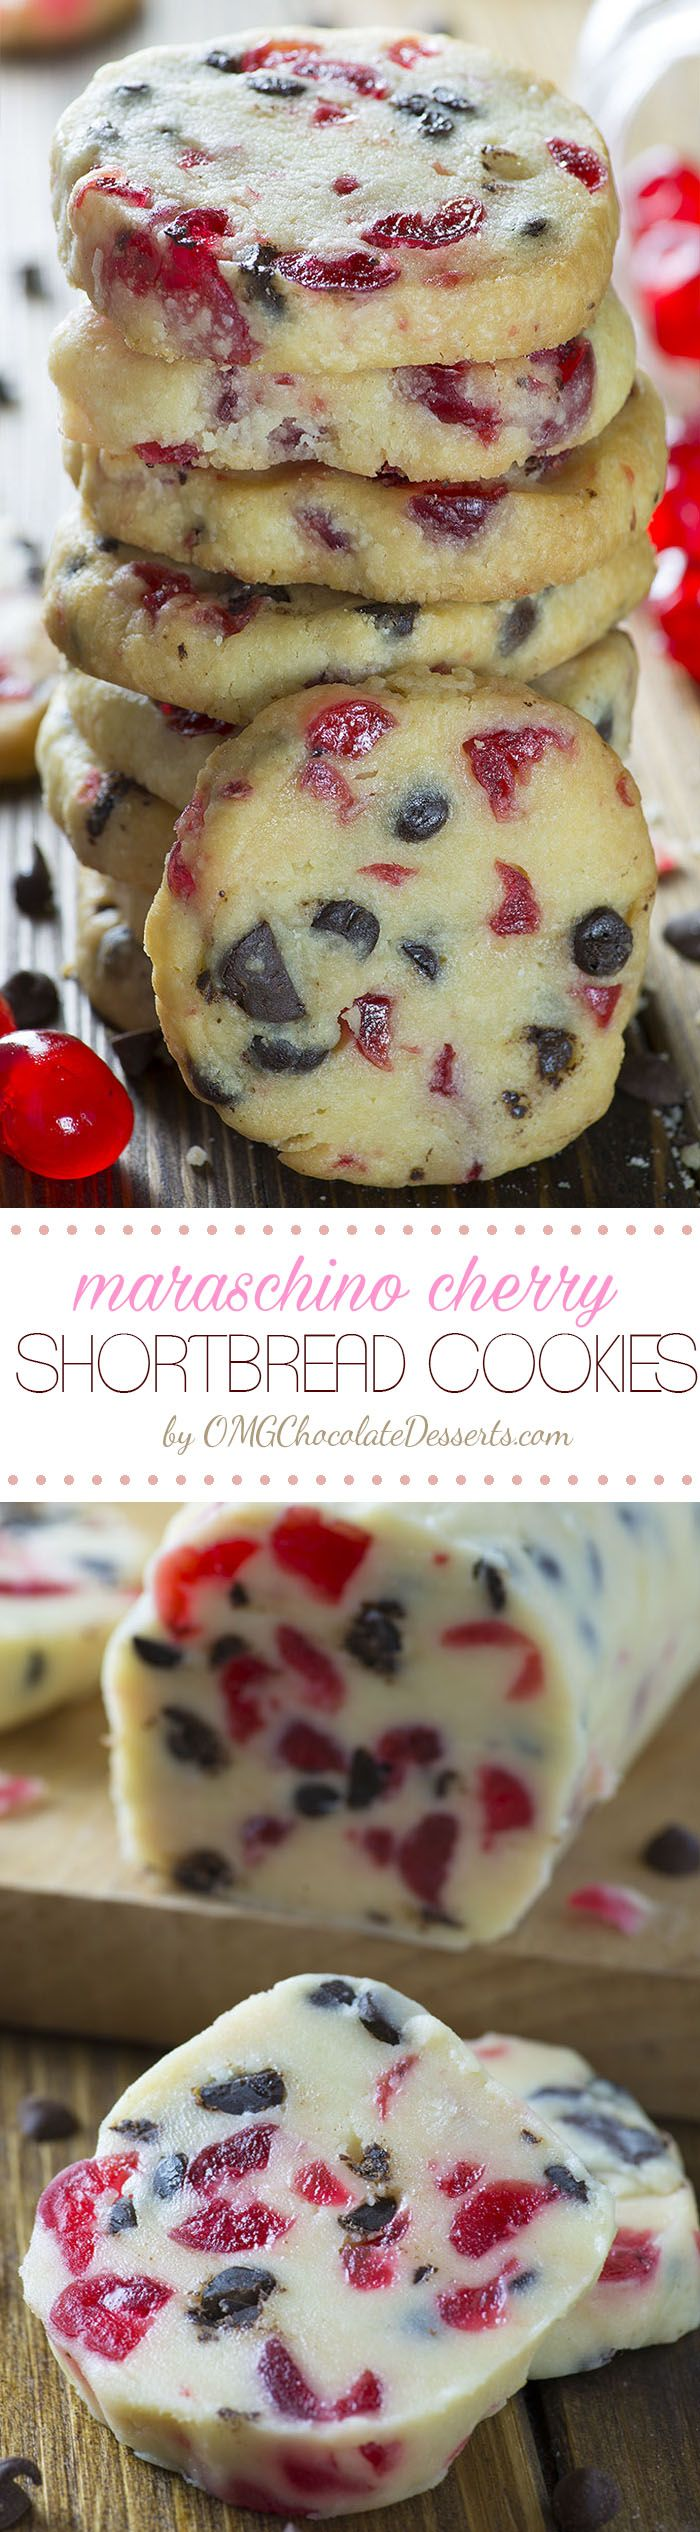 Make the classic shortbread cookies red with bits of Maraschino Cherry and you will get beautiful Christmas Cookies – Maraschino Cherry Shortbread Cookies.